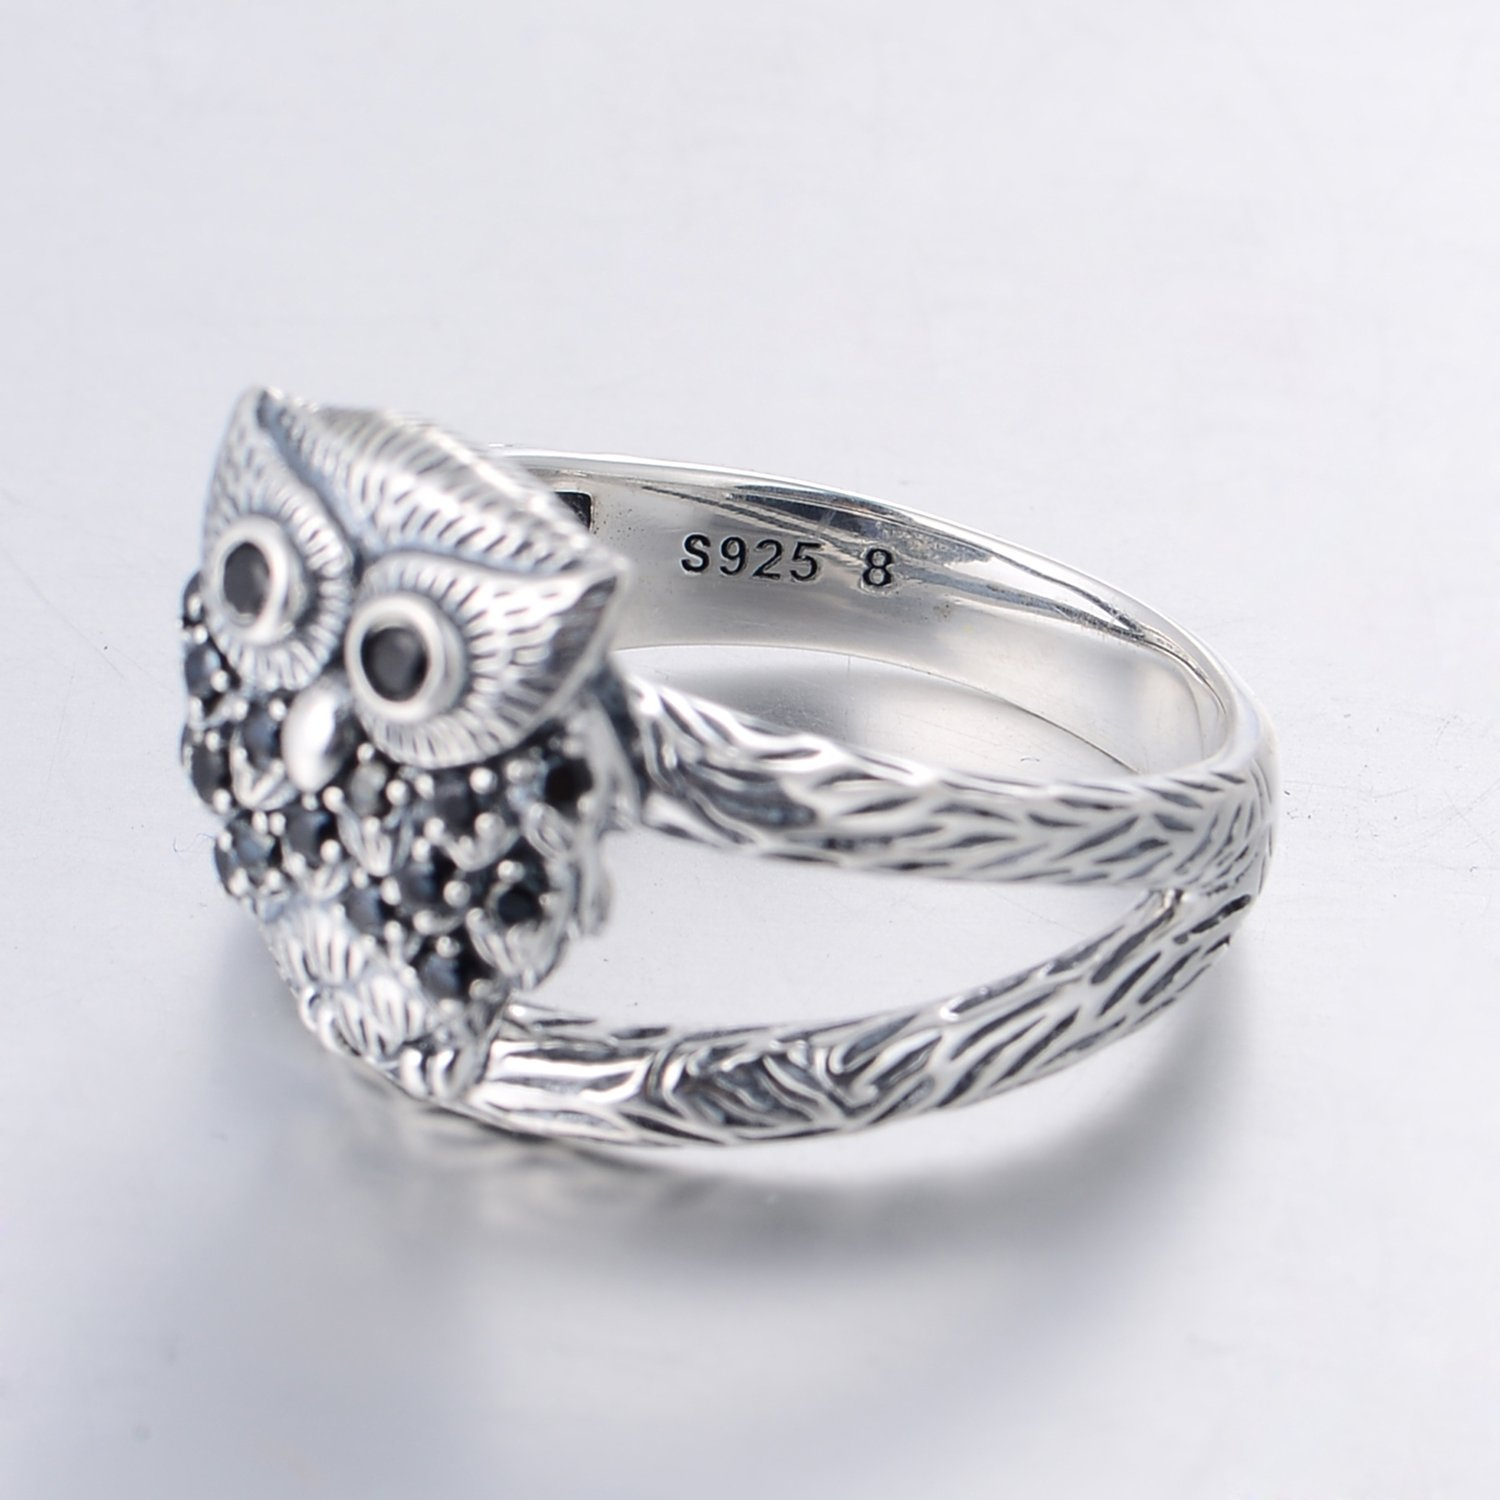 Argent sterling 925/Ring-wise Chouette Ring-animal Bague pour Womens-ring Taille O